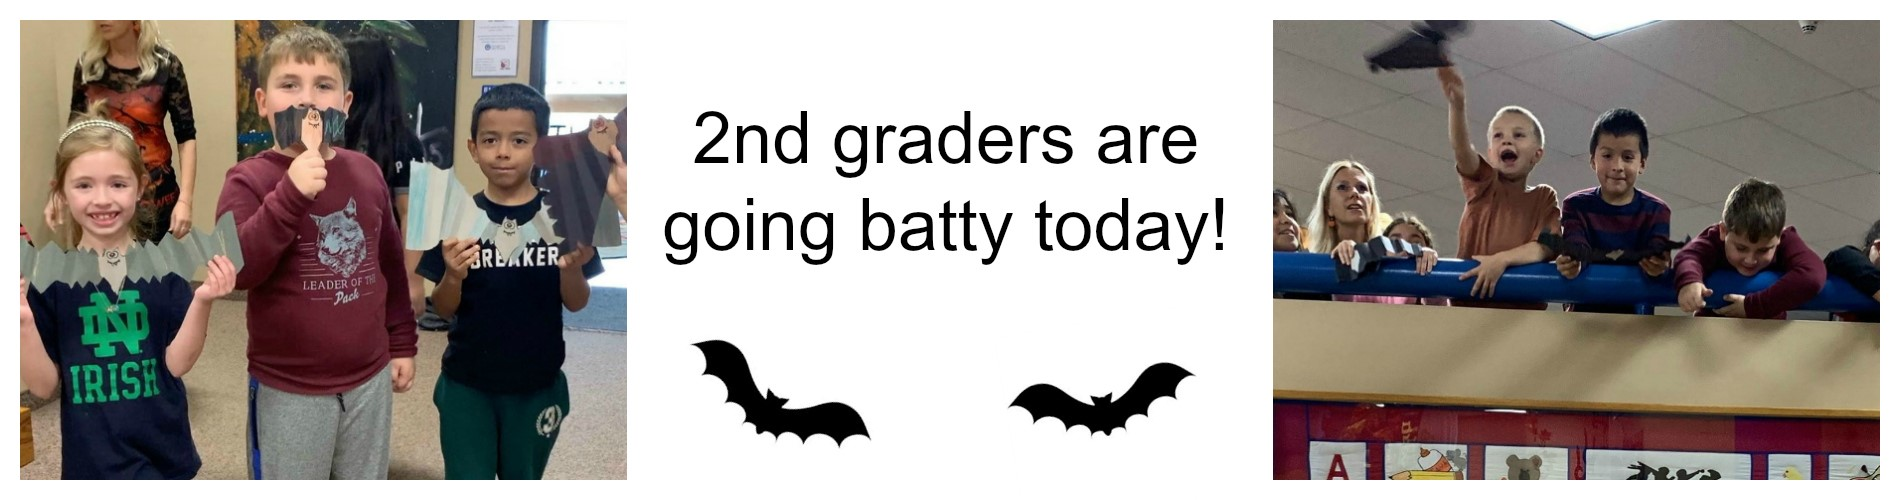 2nd graders are going batty today.